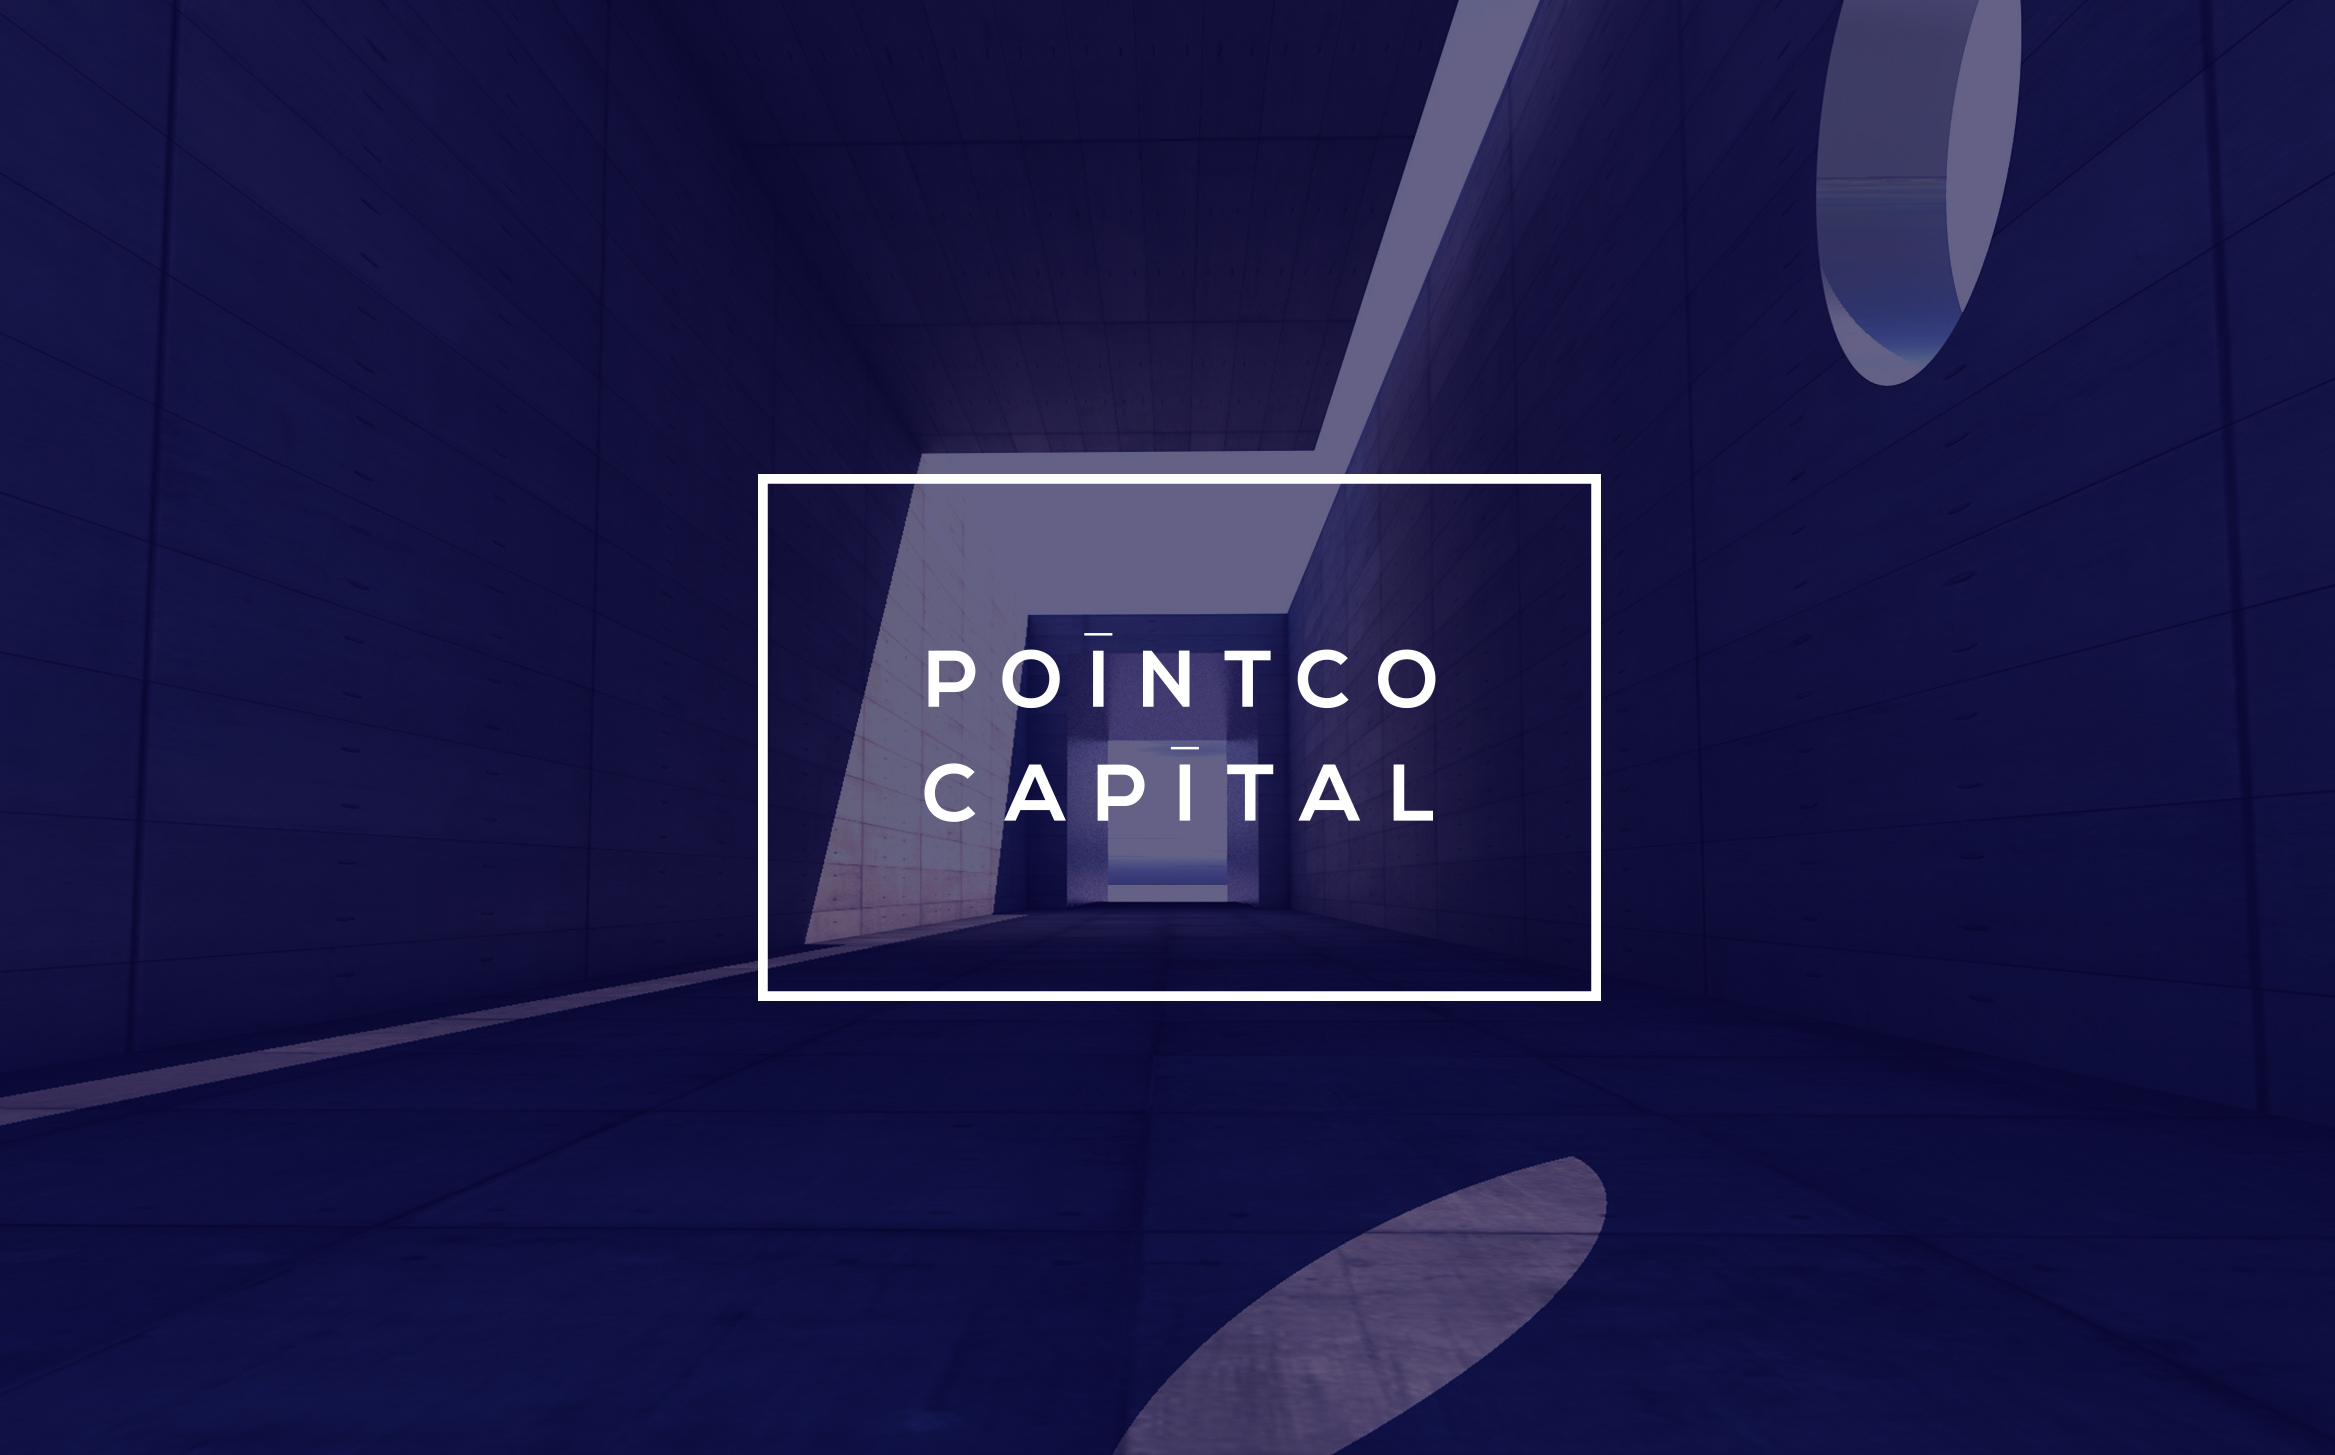 POINTCO CAPITAL